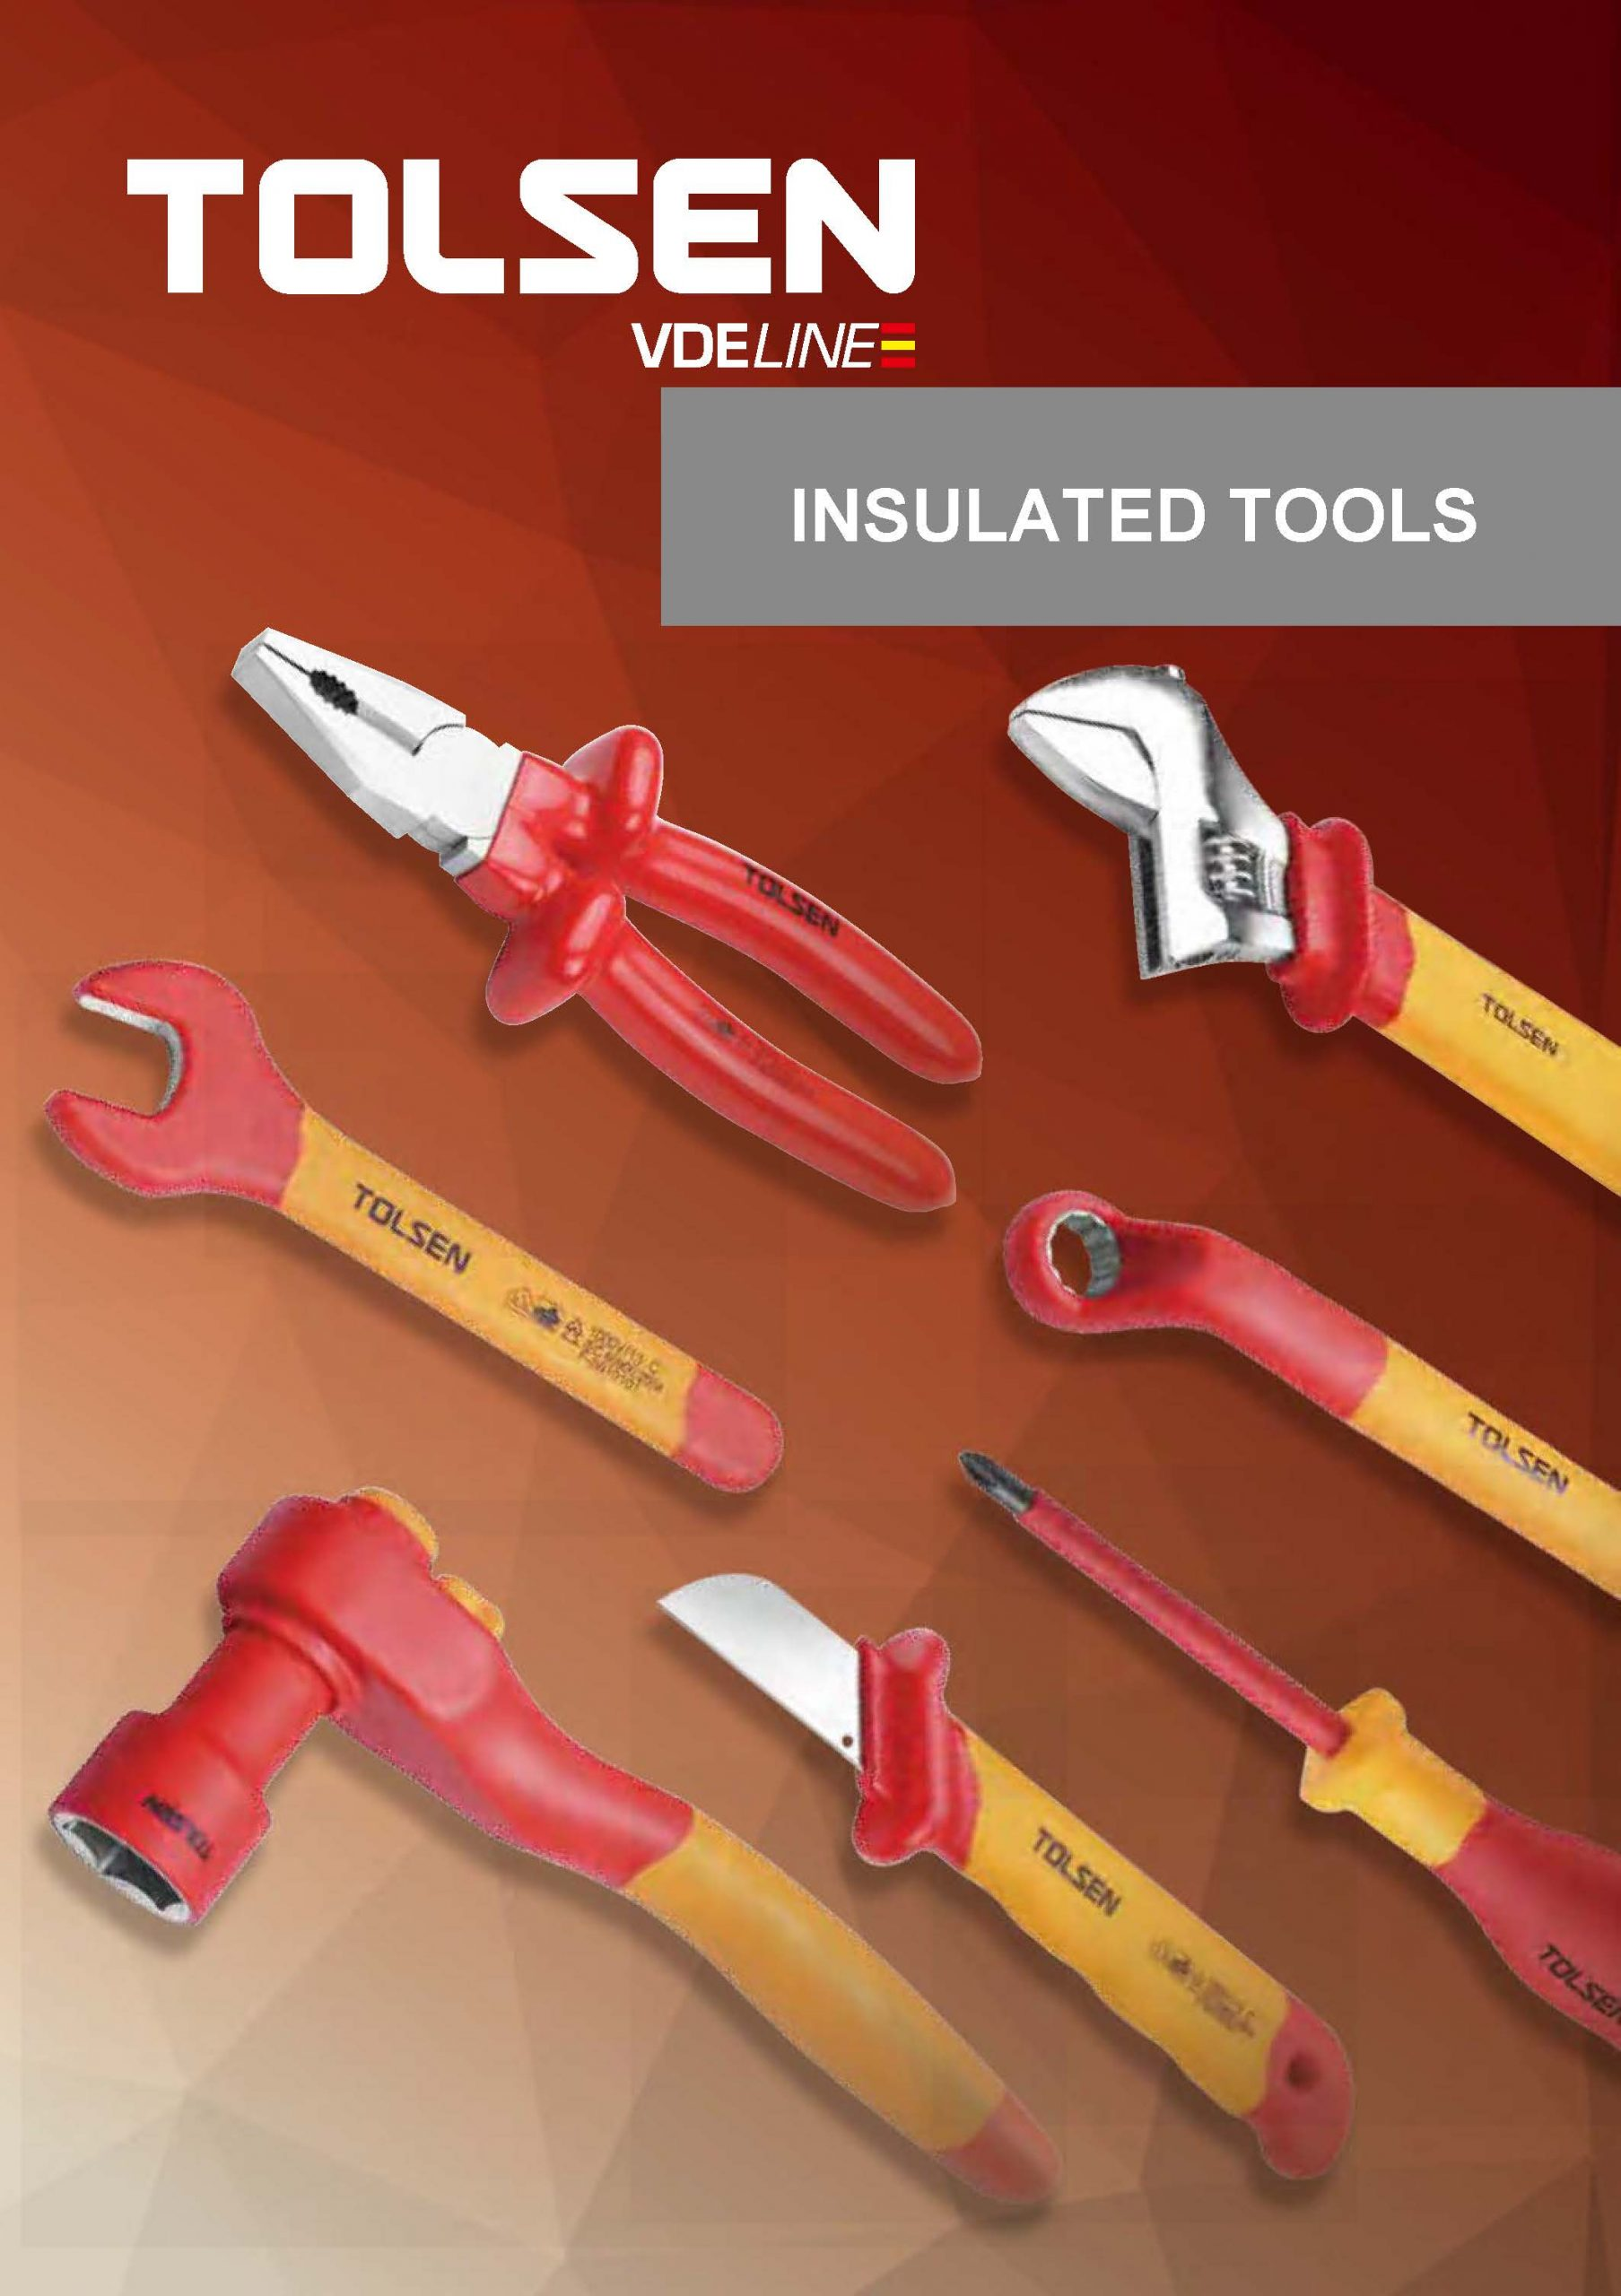 tolsen vde insulated tools